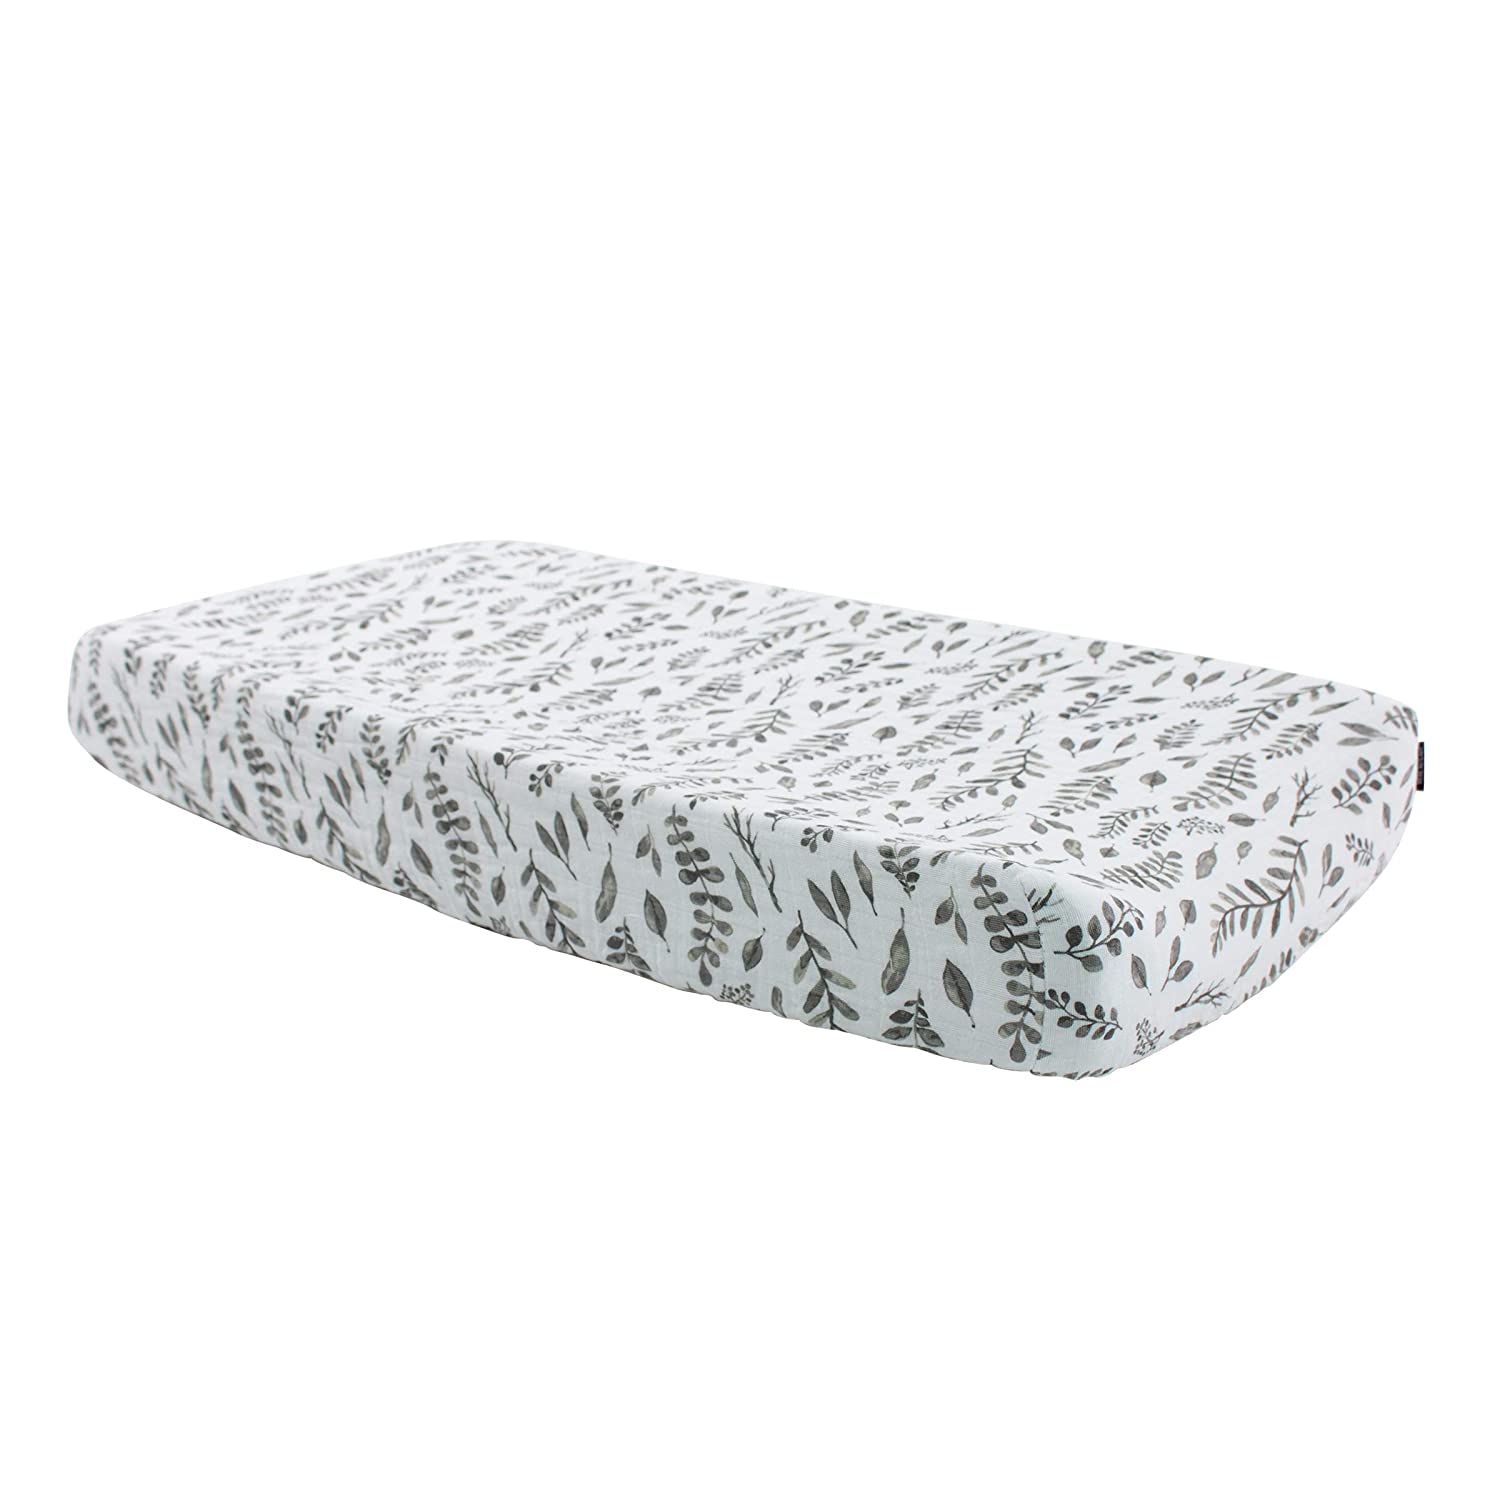 Bebe au Lait Classic Muslin Changing Pad Cover, 100% Cotton Muslin, One Size Fits Most - Leaves